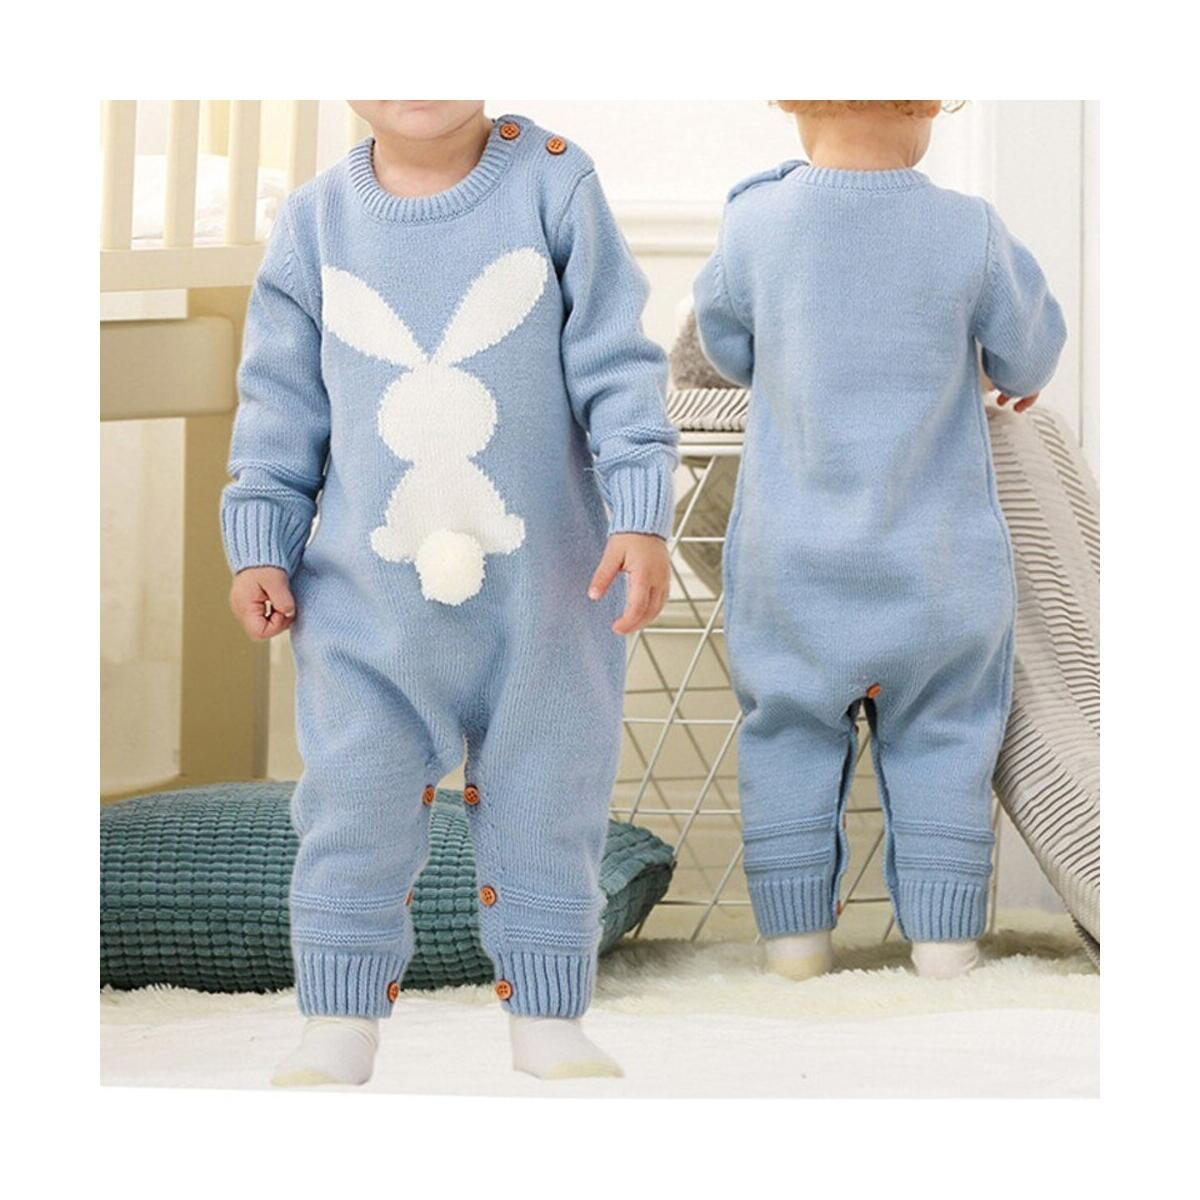 Baby Romper Knit Long Sleeve Jumpsuit for Boys Girls One Piece Overall Infant Baby Clothes